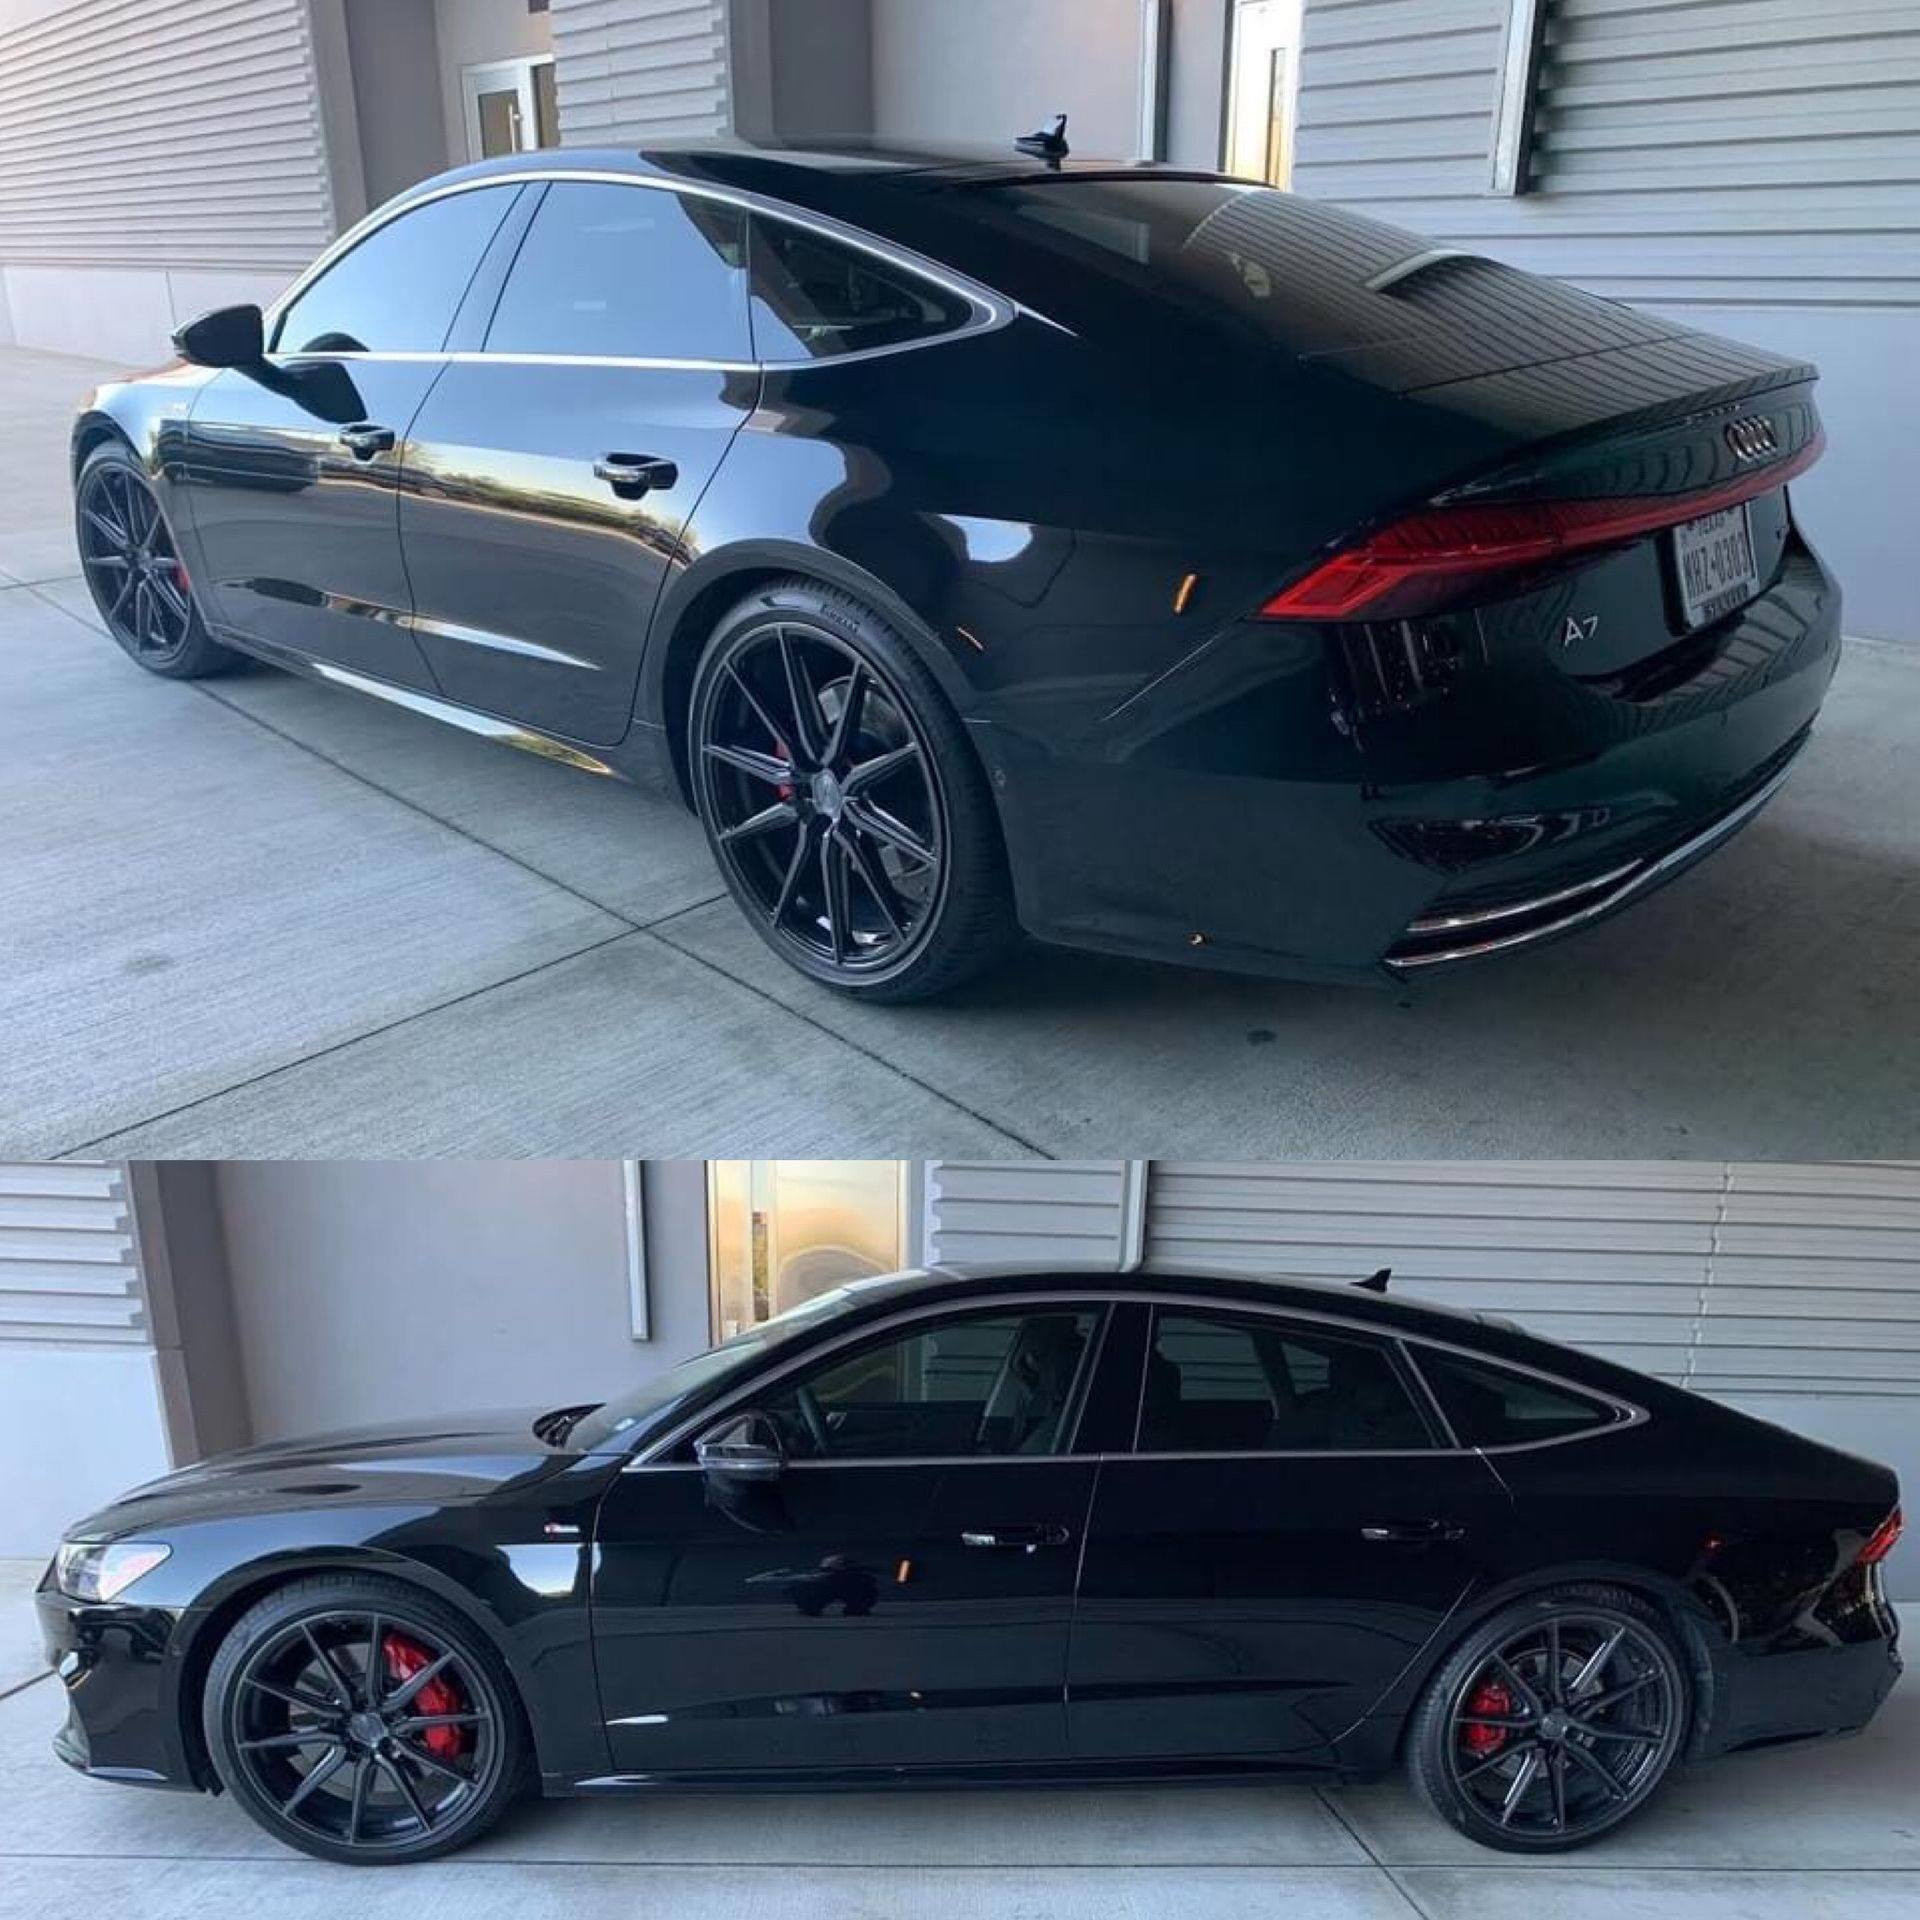 Audi A7 with factory tires and Vossen HF3 wheels